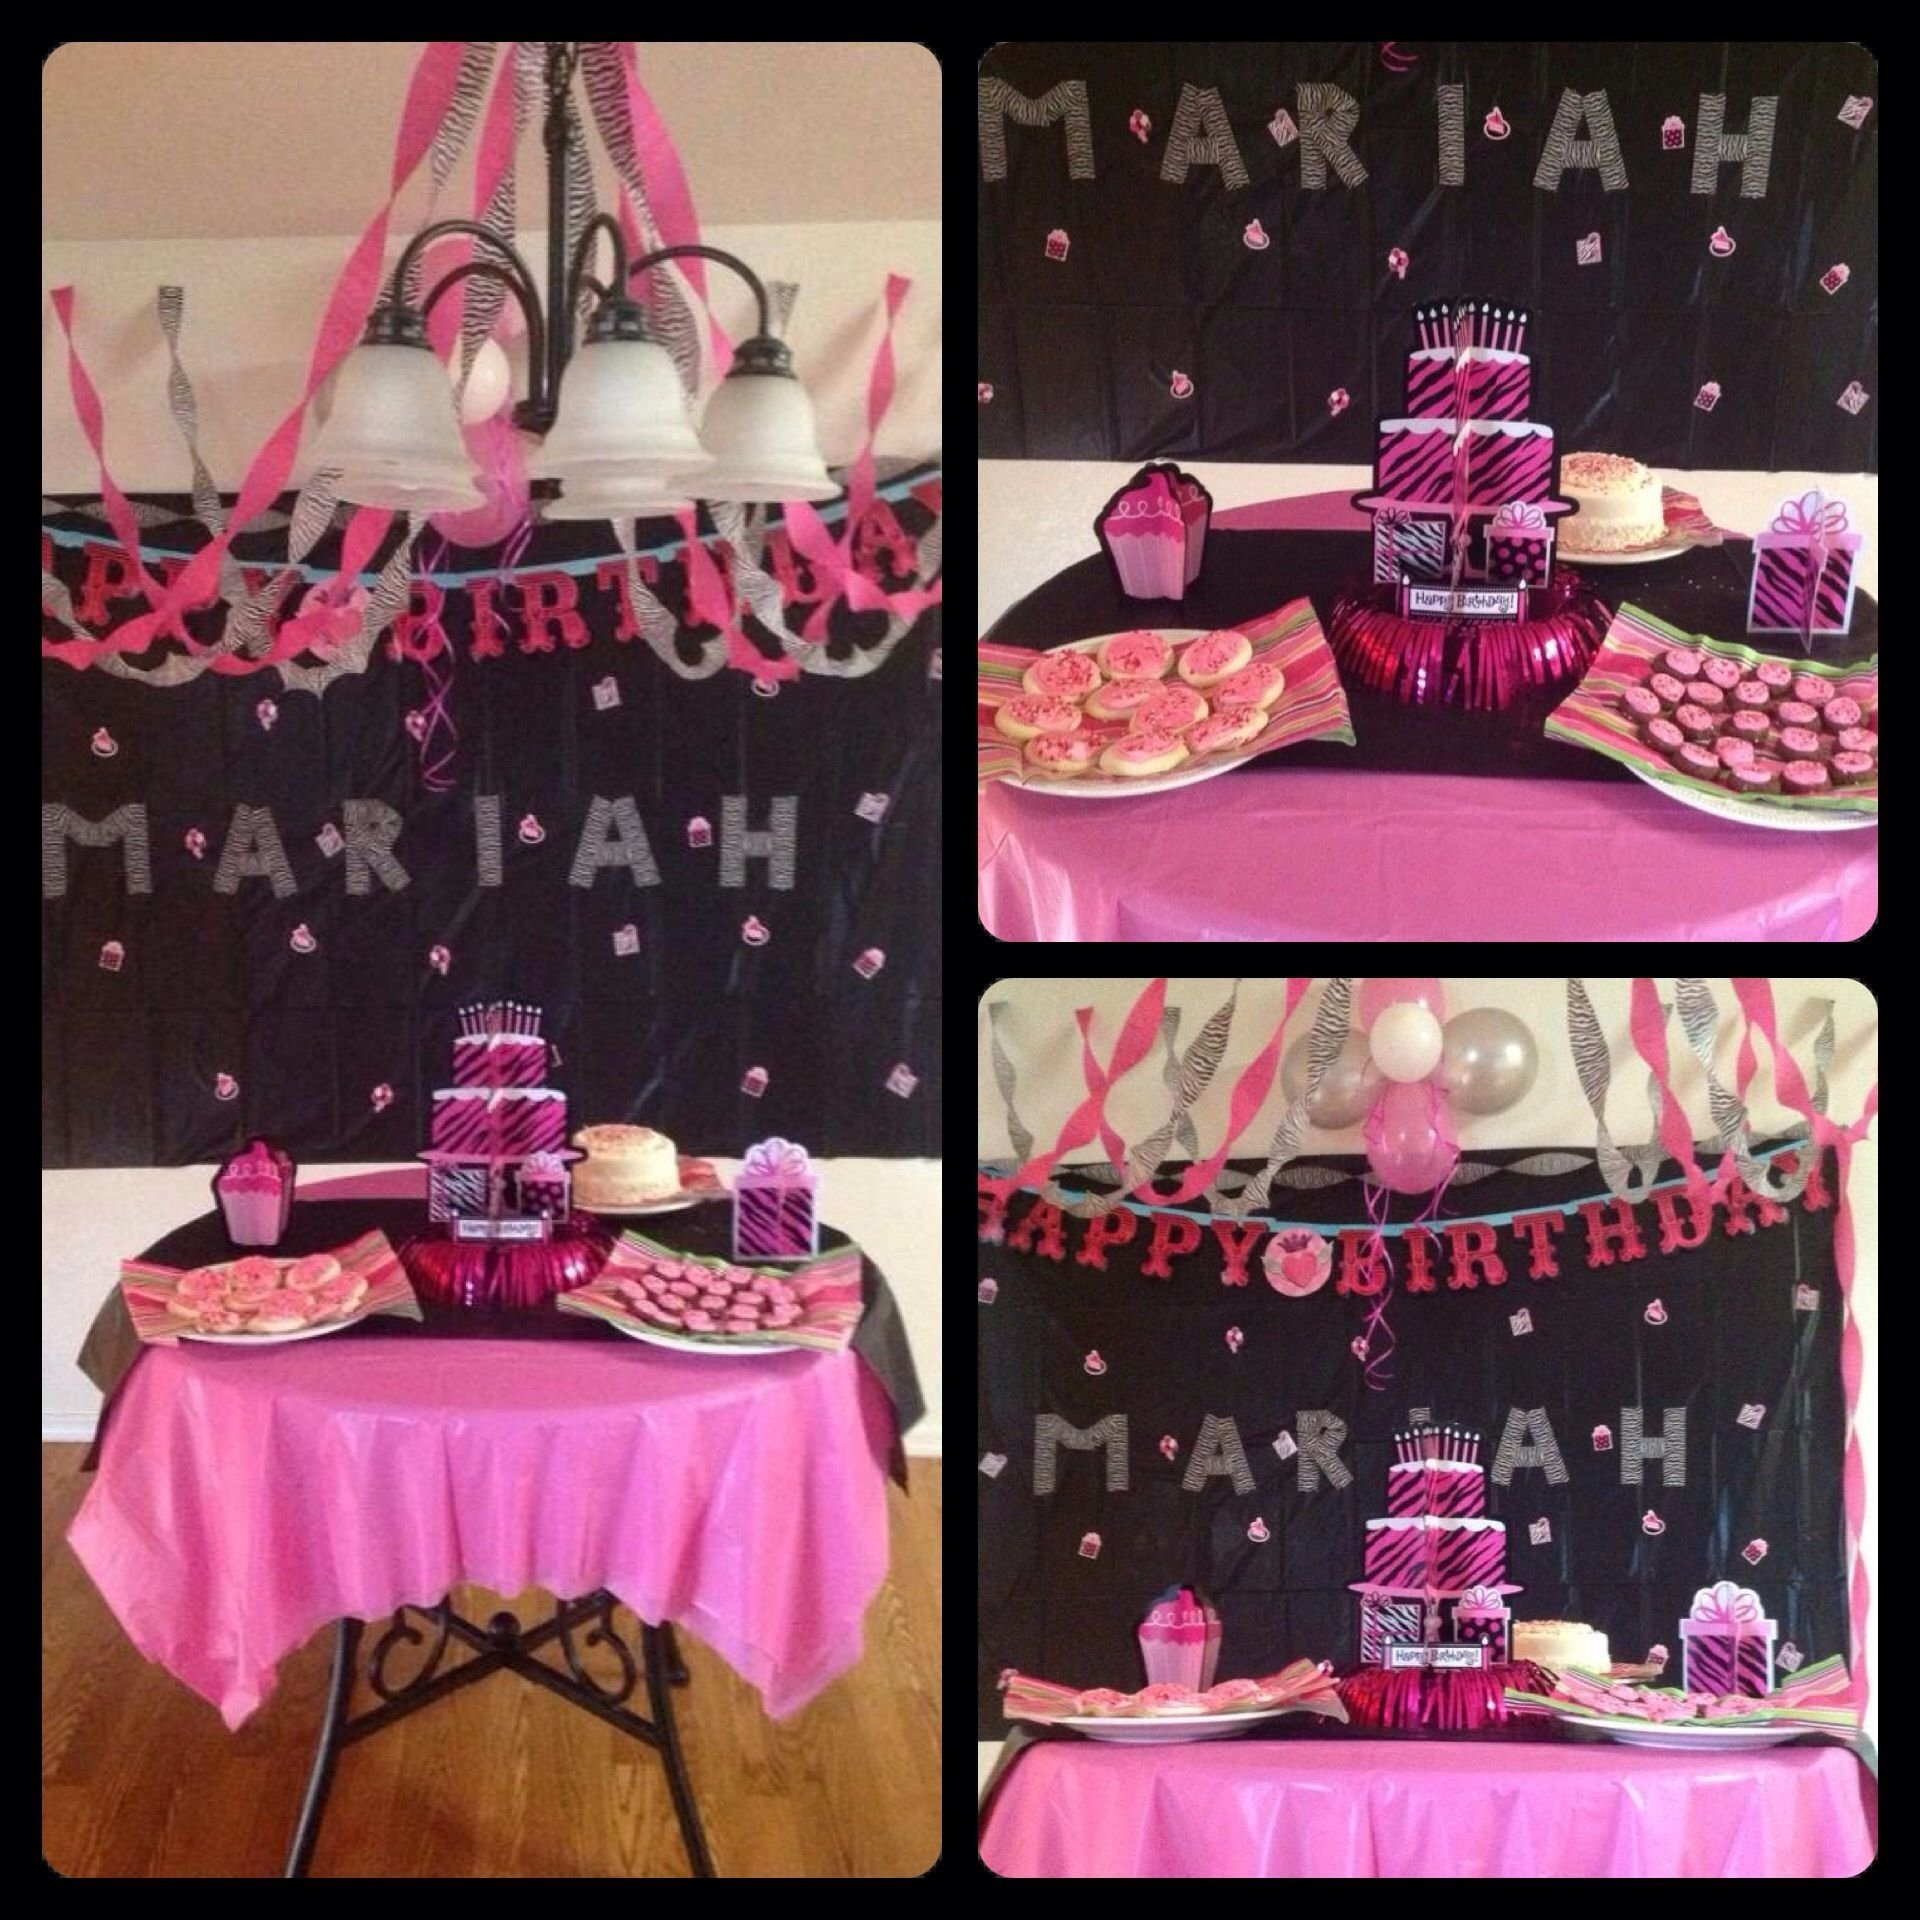 10 Awesome Slumber Party Ideas For 11 Year Olds party ideas had my 10 year old celebrate her birthday with some 8 2020